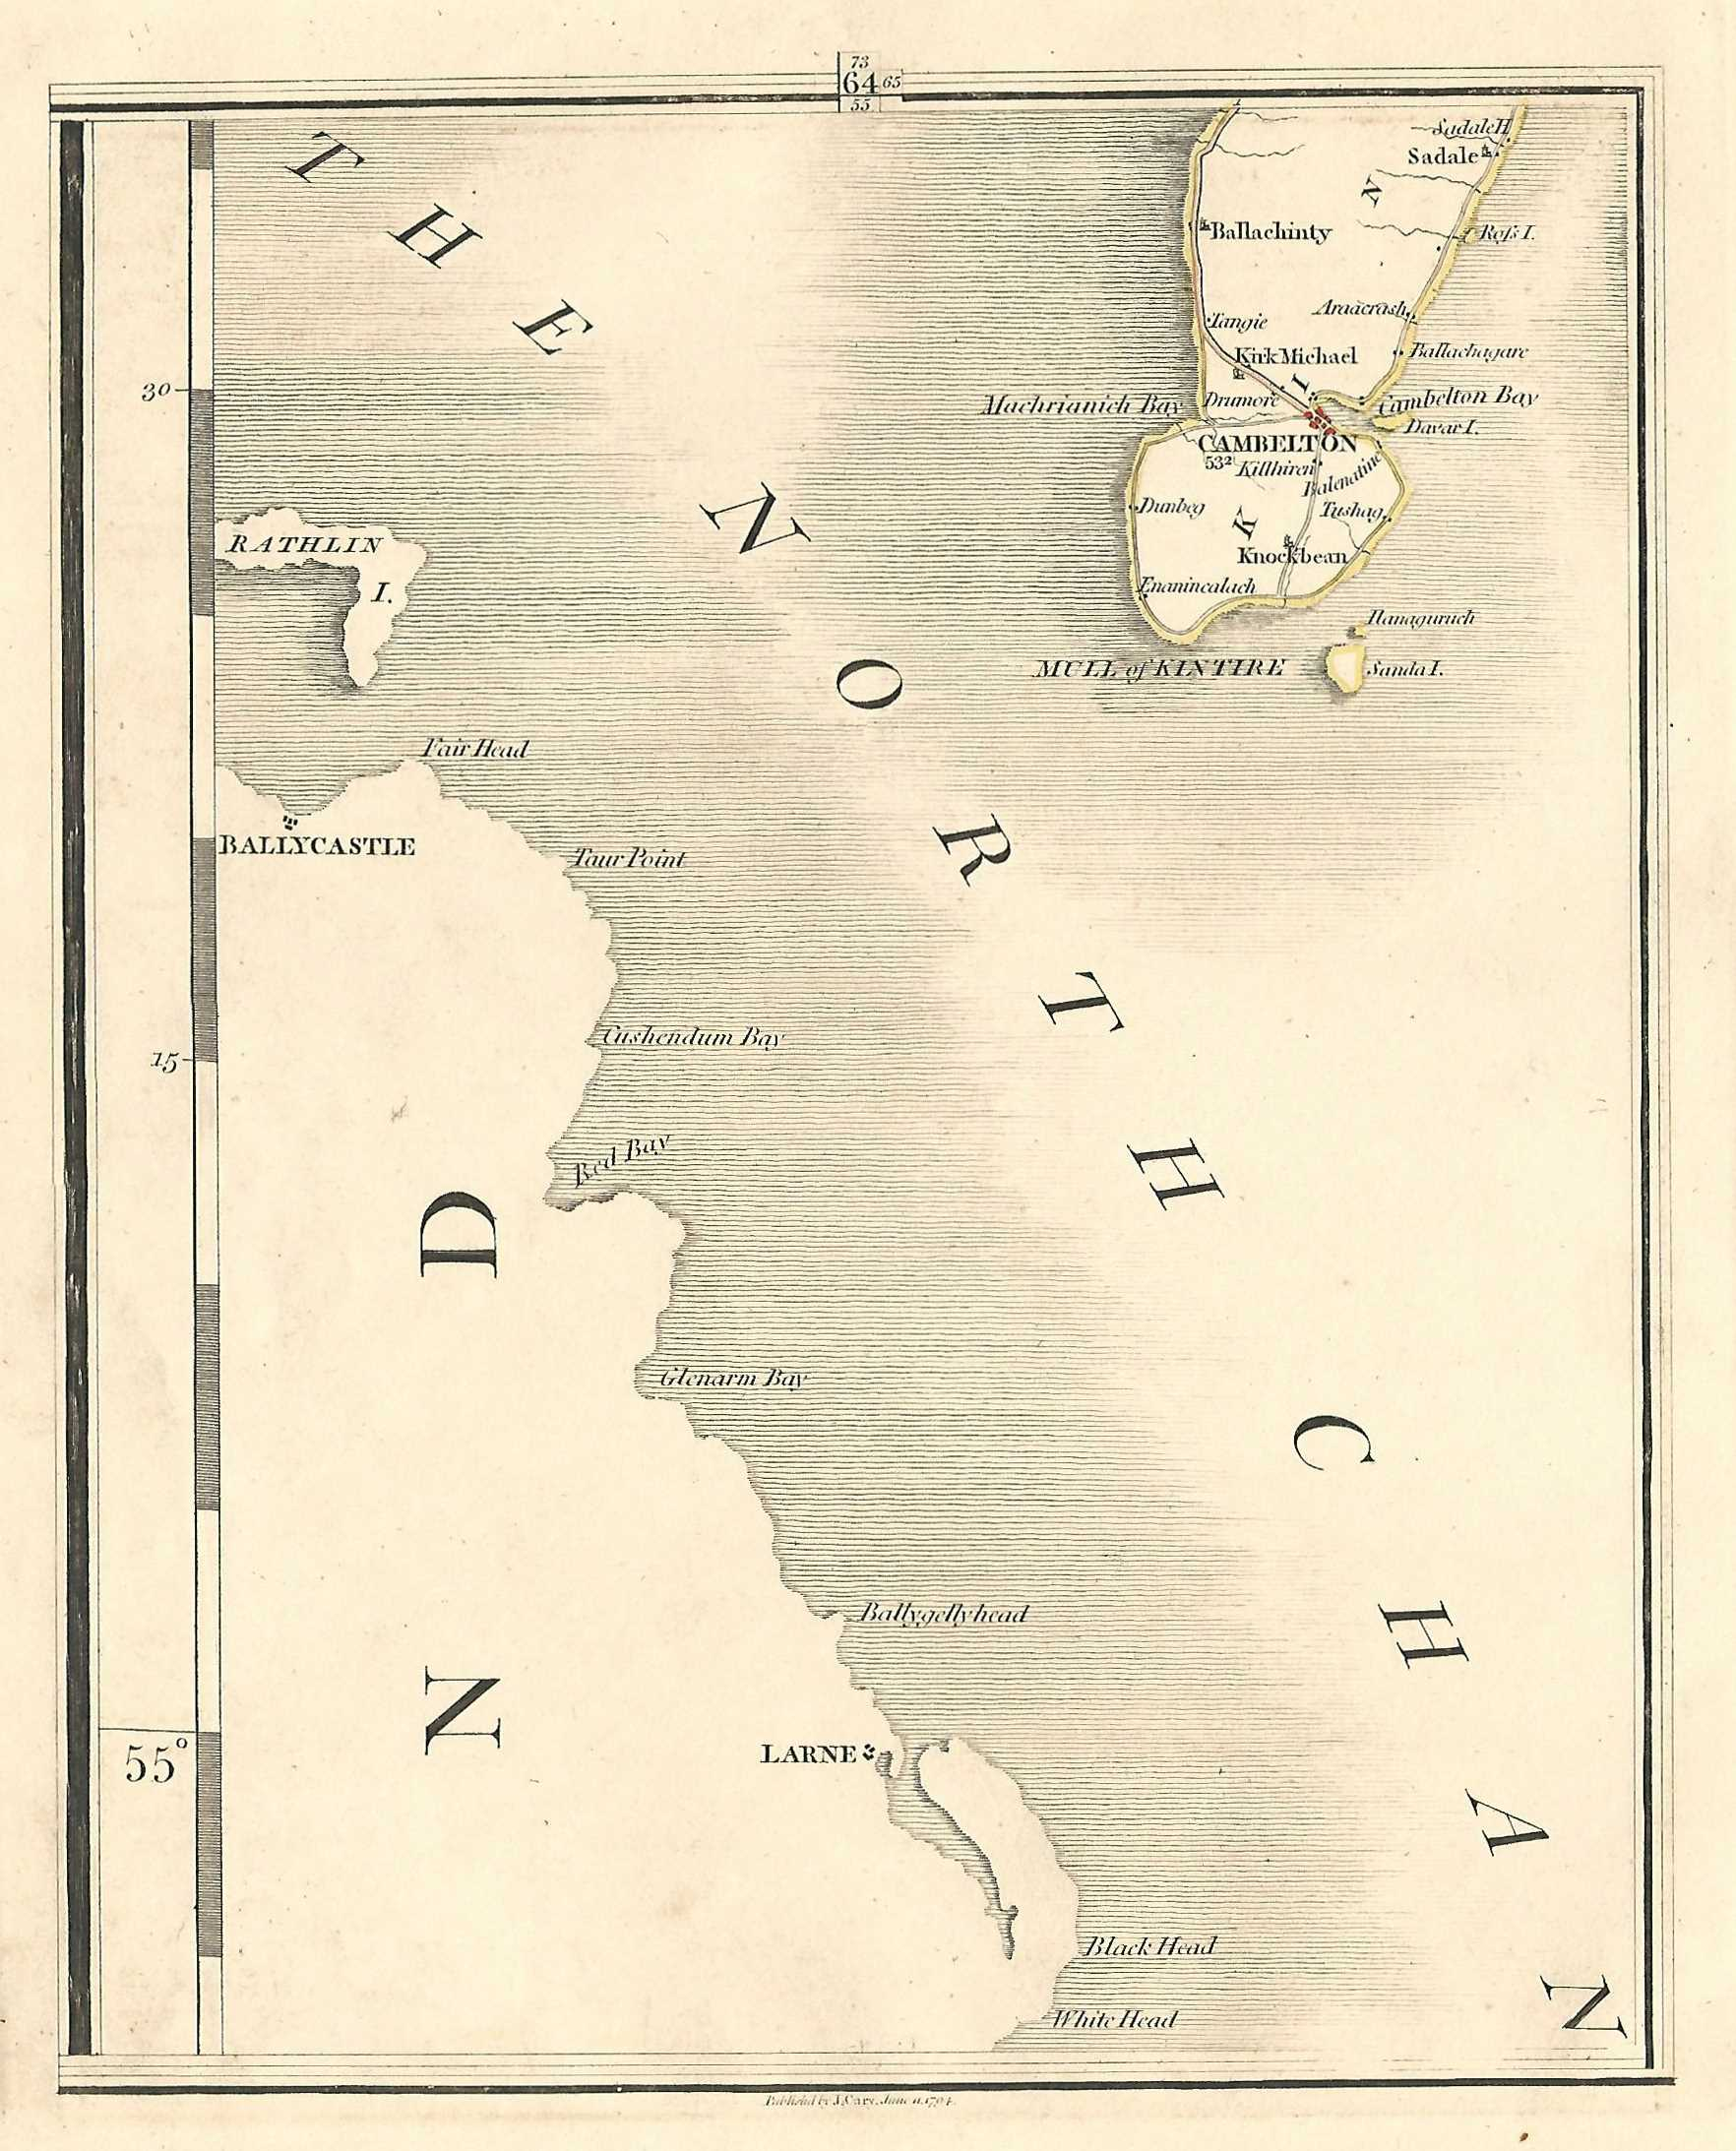 Campbeltown Scotland Map.Campbeltown Mull Of Kintyre Argyll And Bute Scotland Antique Map